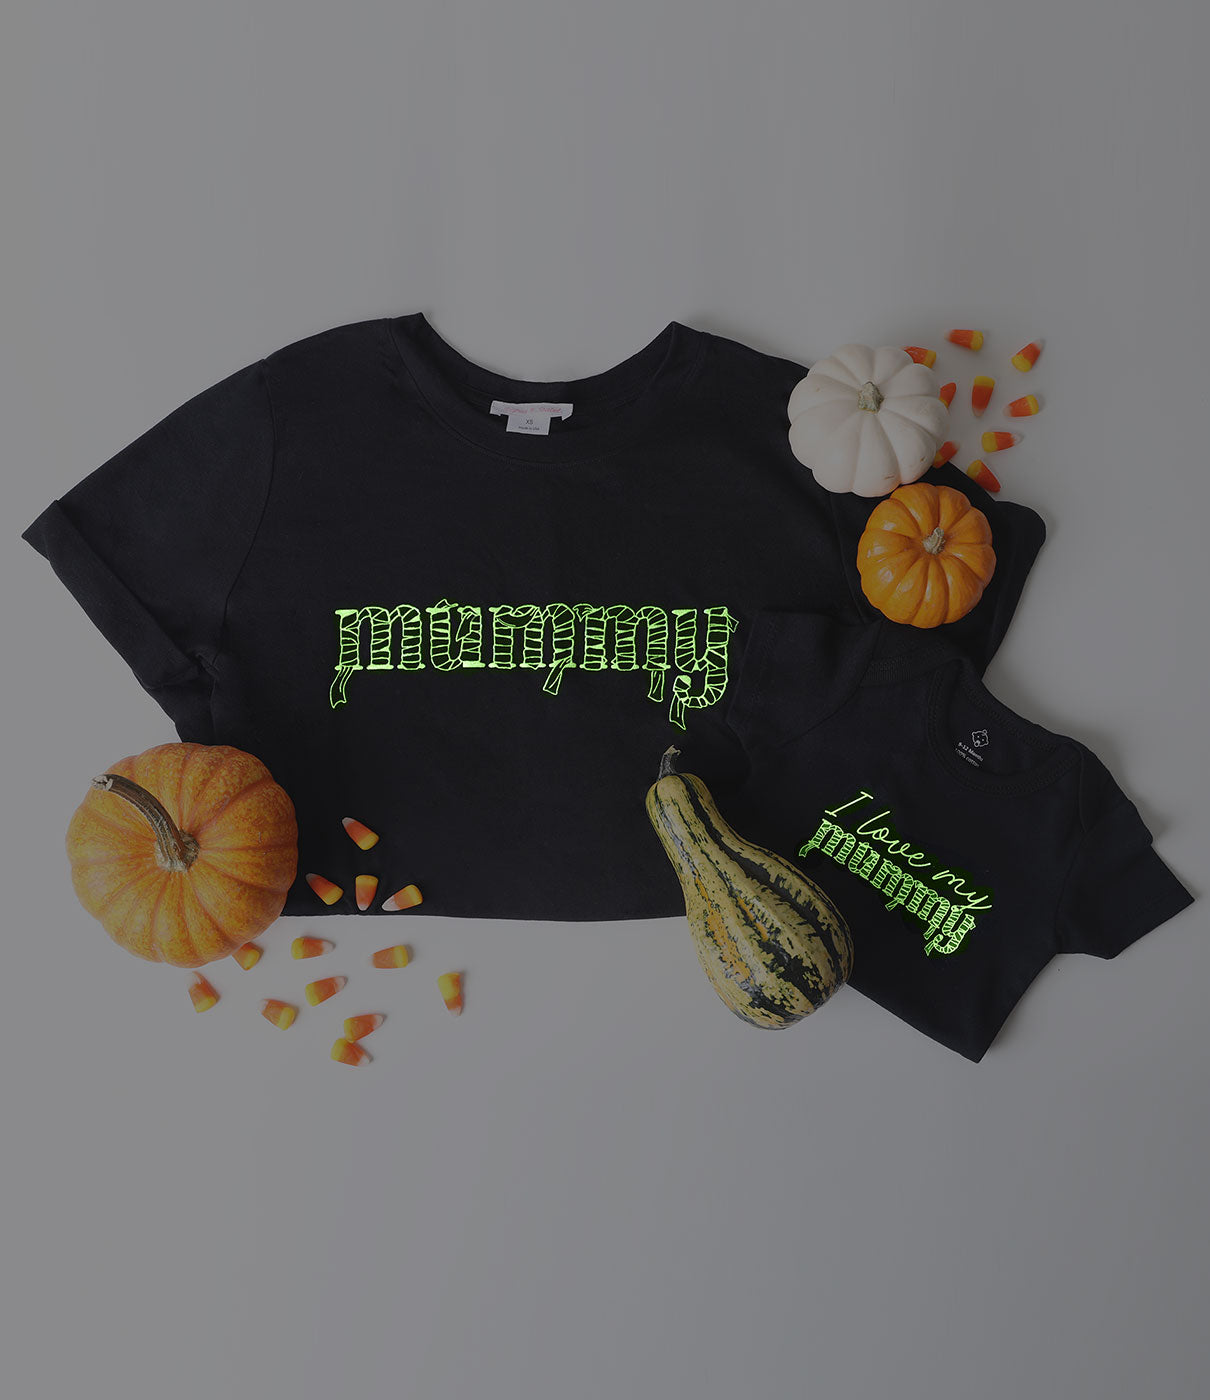 Fashion + FunctionGlow in the Dark printed graphic with side slits that accommodate your growing belly. A simple t-shirt to love long after Halloween and baby arrives. Throw it on with leggings for lounging and errand-running, or pair it with jeans for a casual Halloween eve.